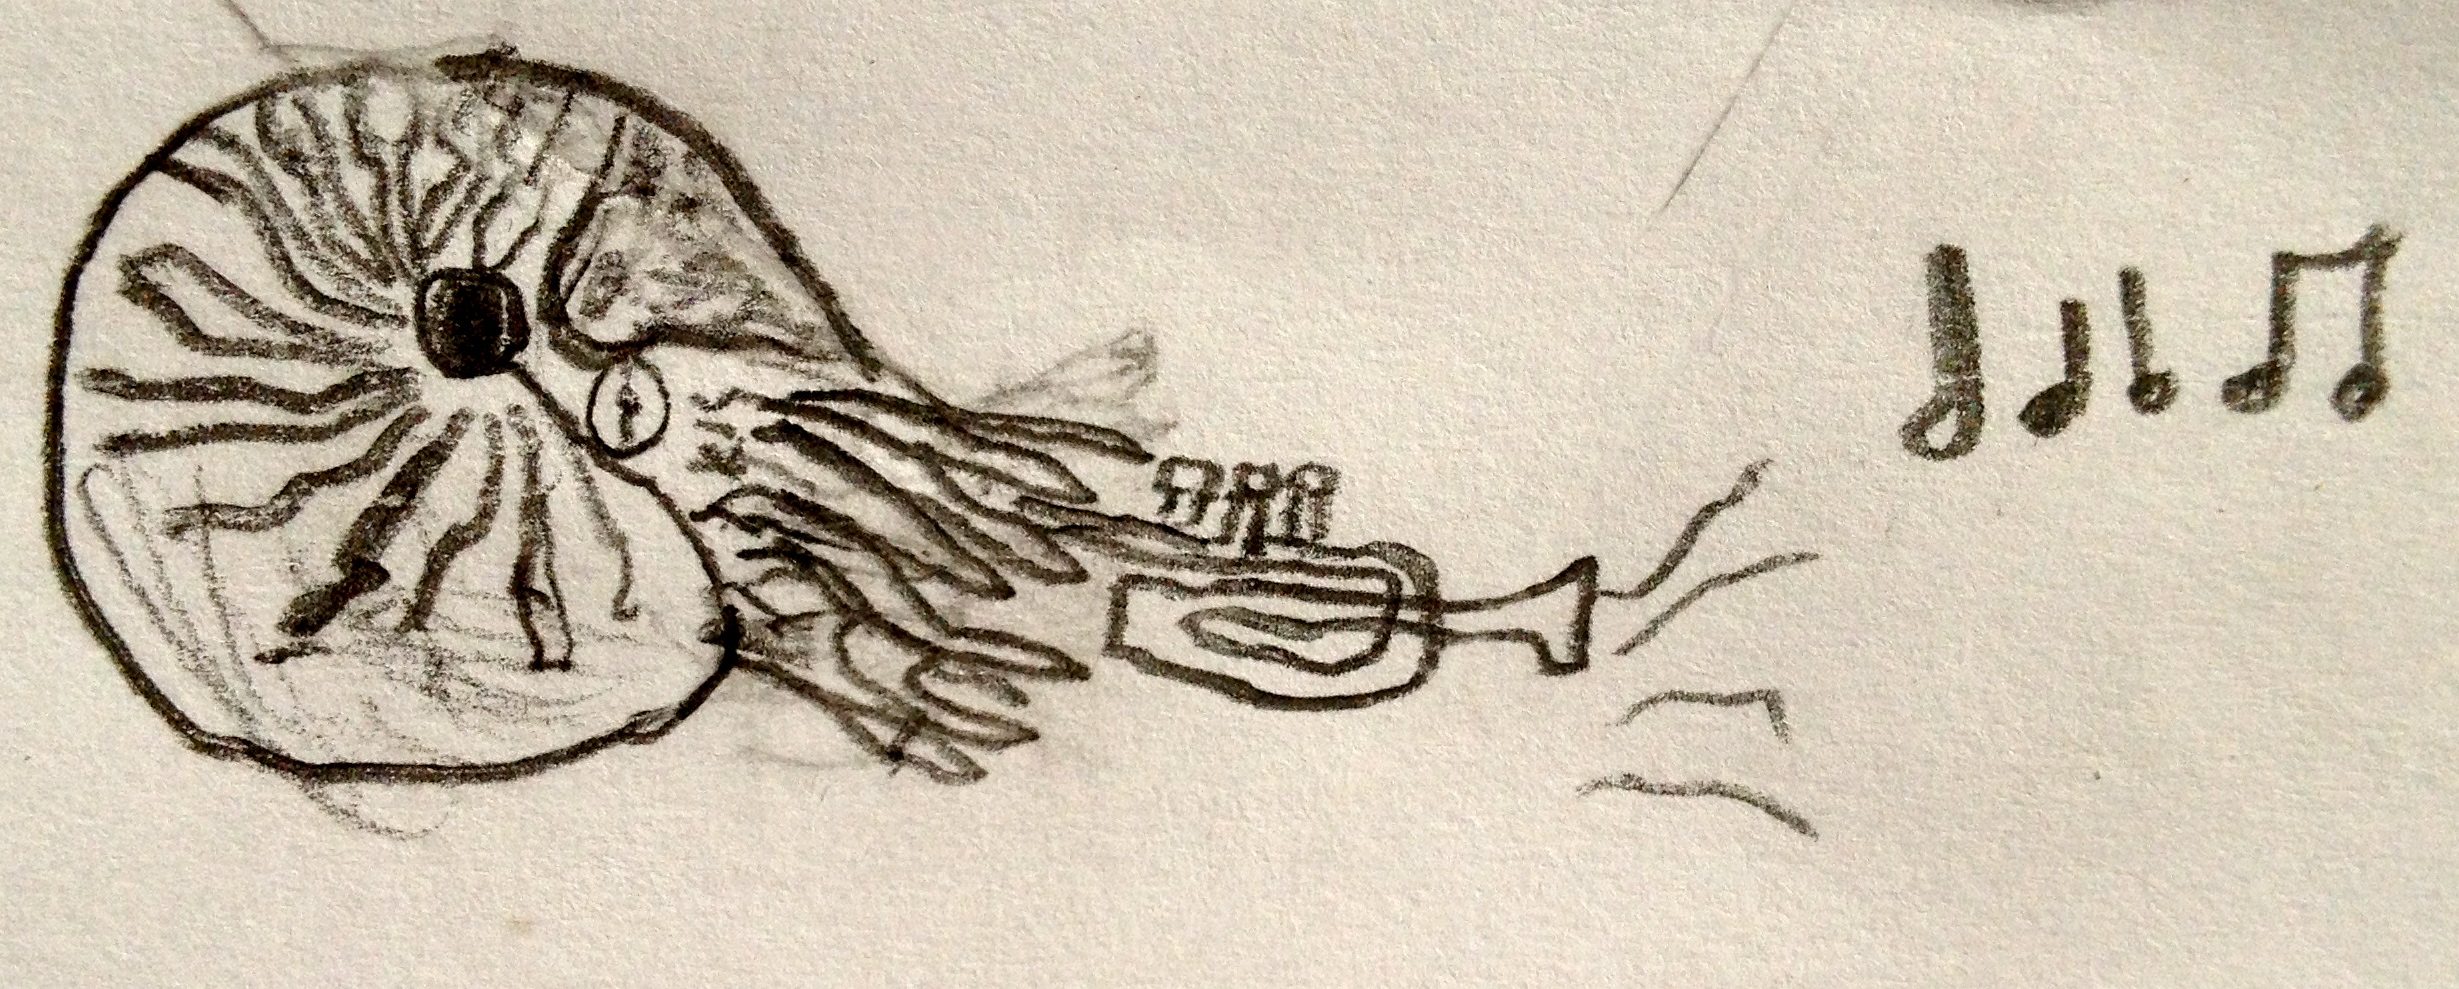 My son, Owen Curtis, drew this flexible nautilus superhero playing trumpet.